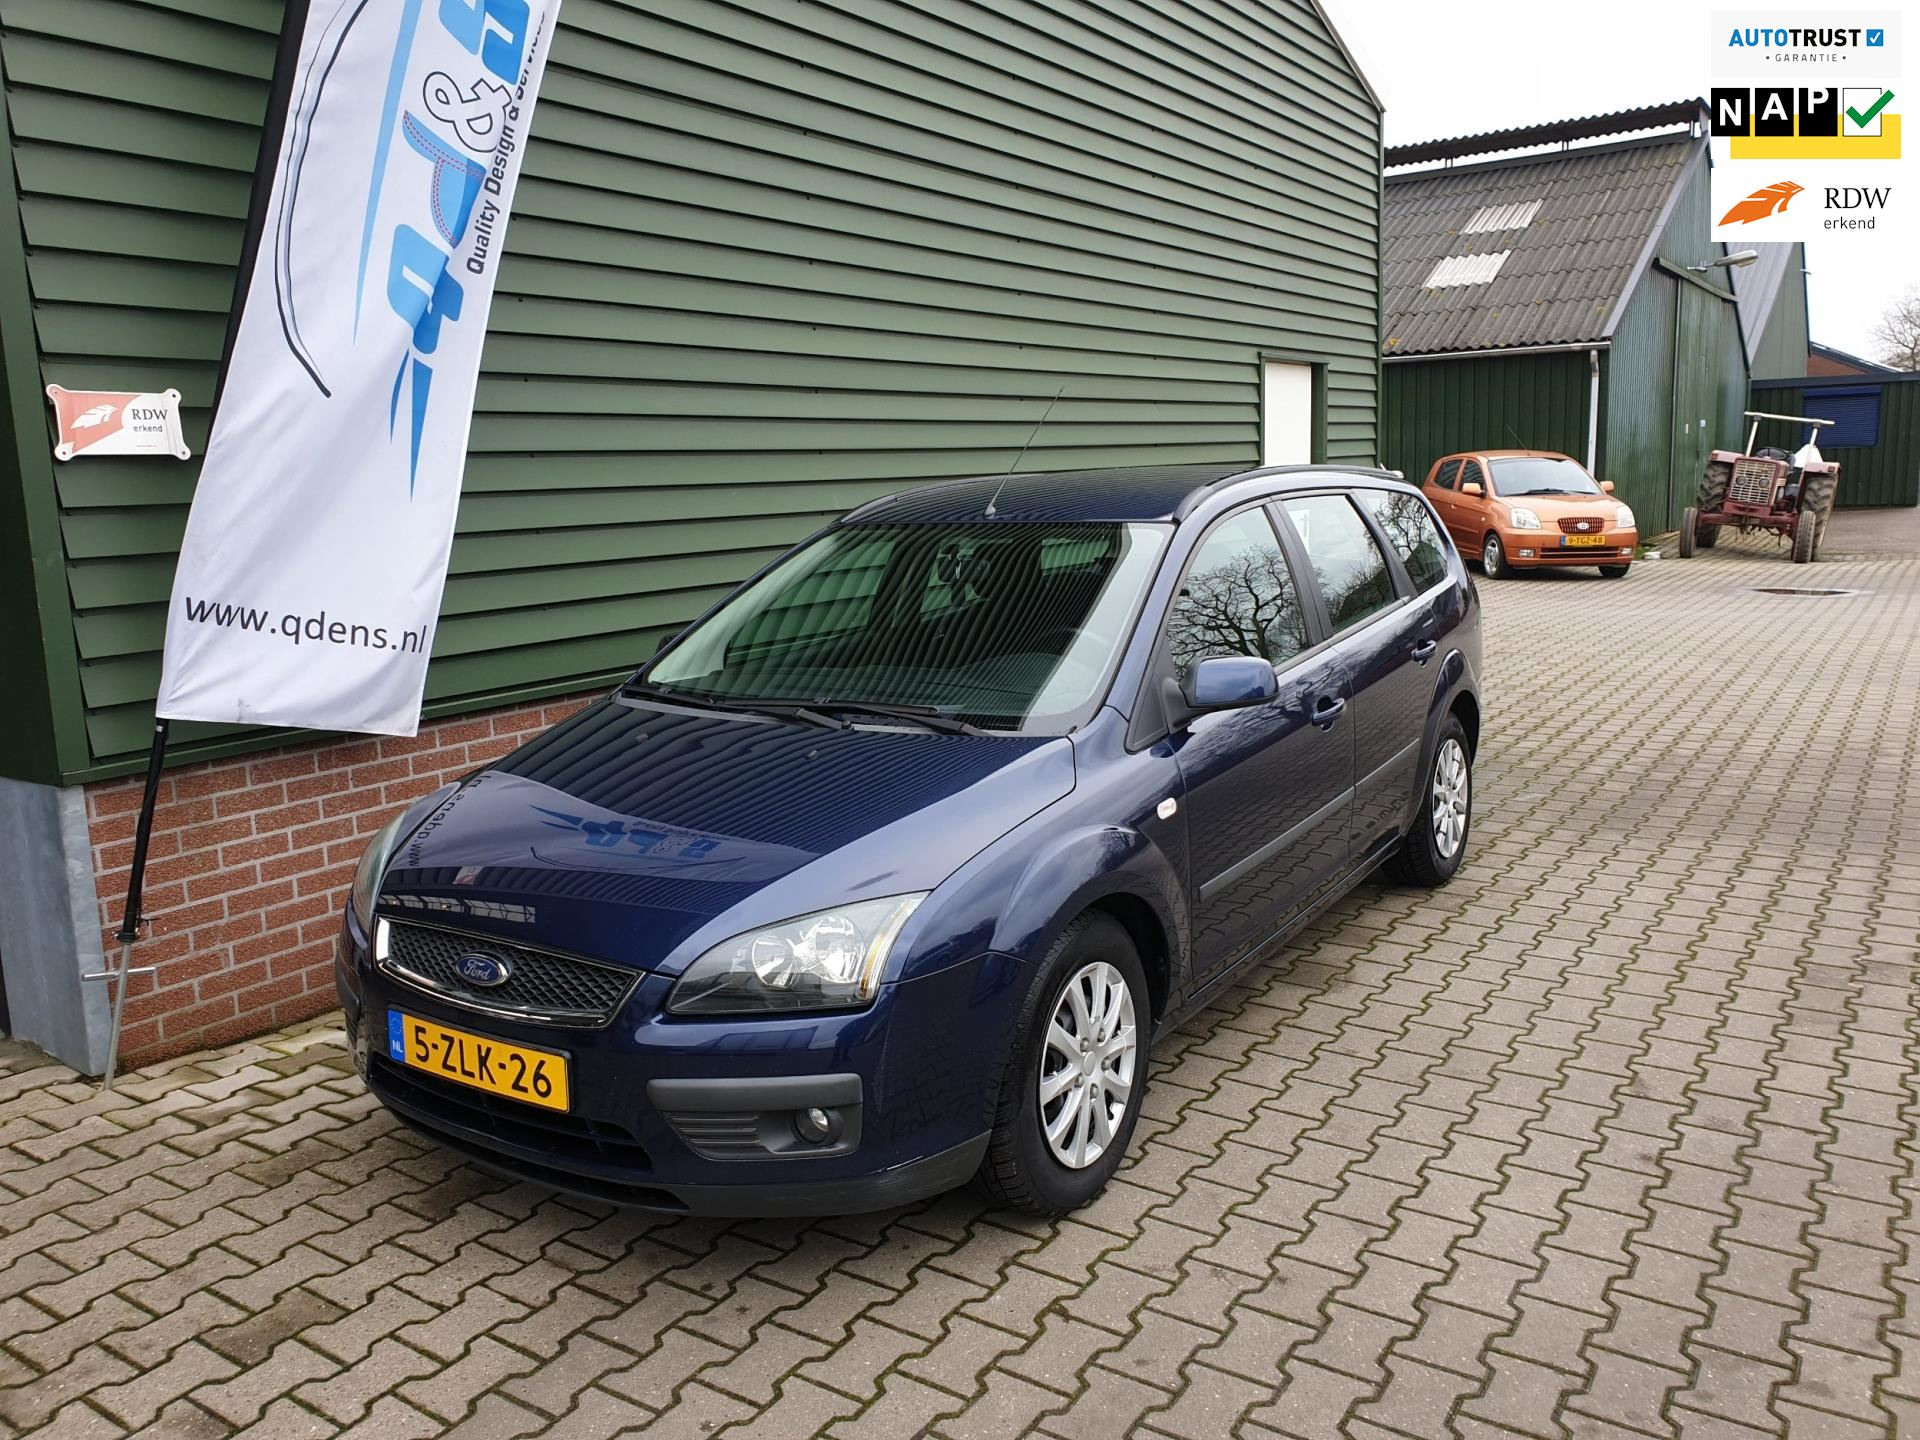 Ford Focus Wagon occasion - Quality Design & Services